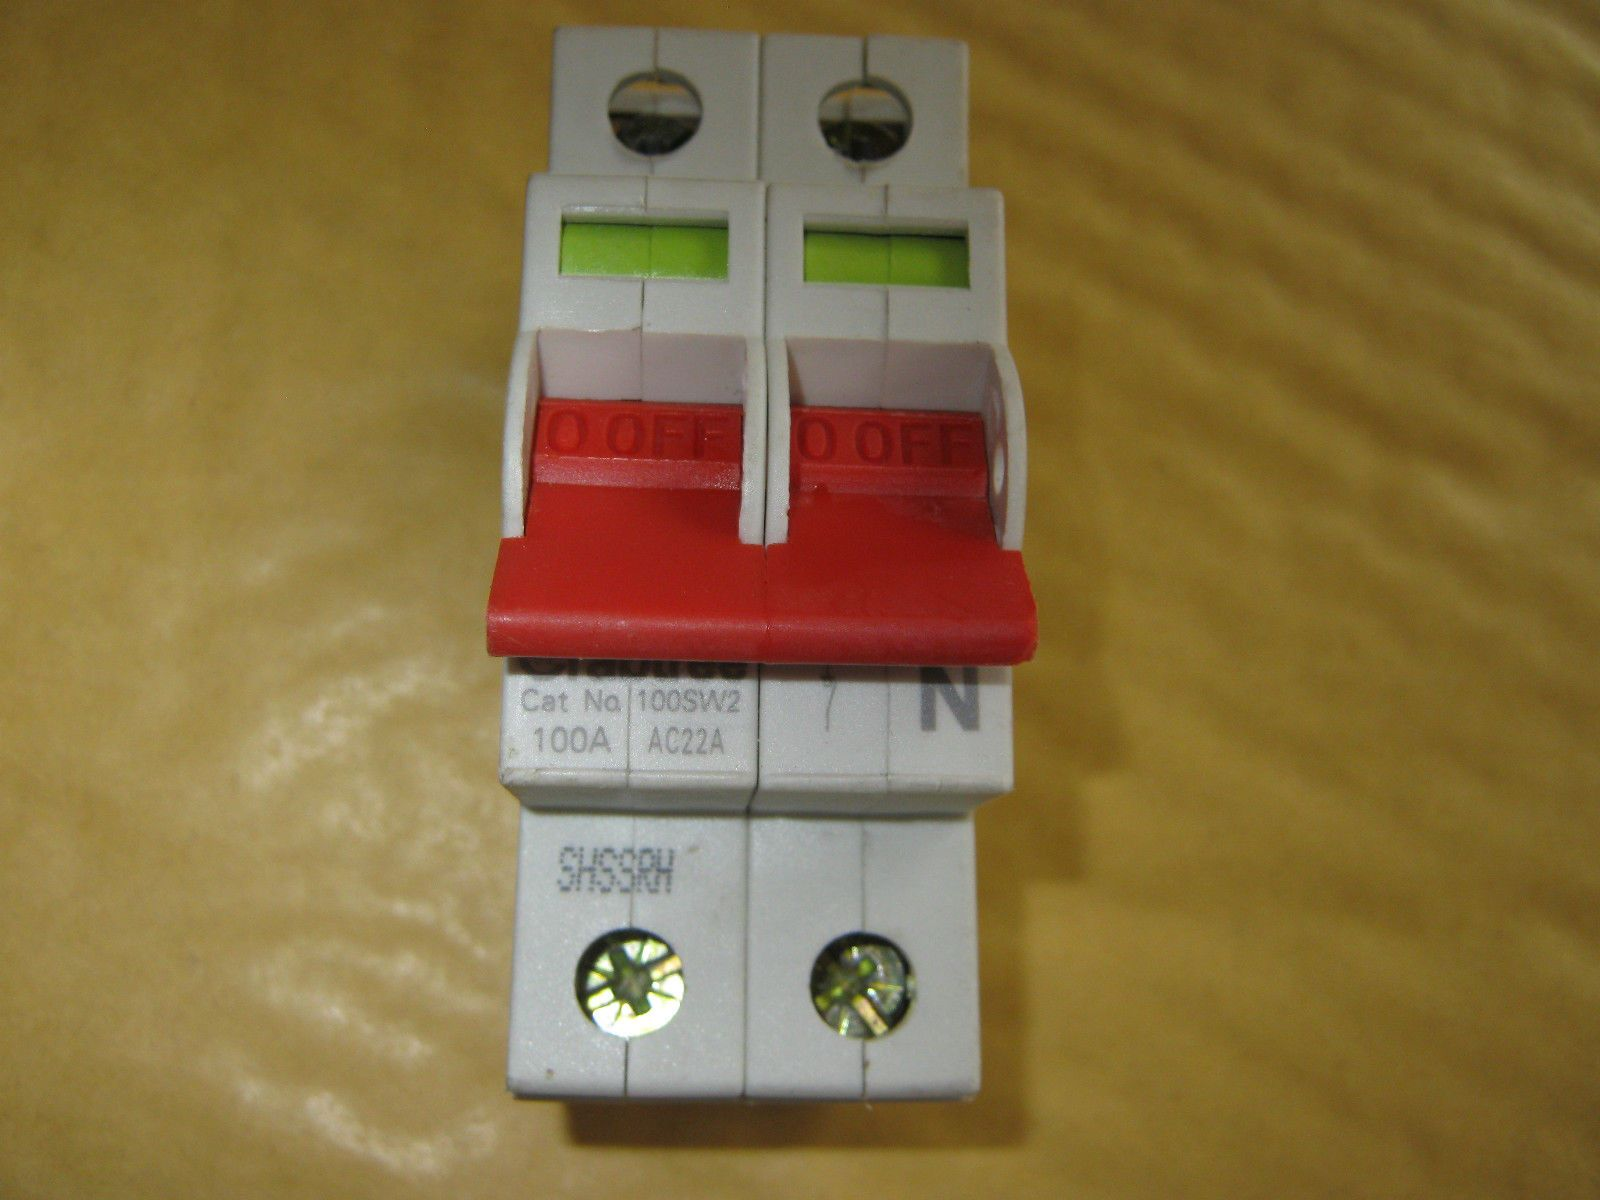 Crabtree 100sw2 100 Amp Main Switch Disconnector Ac22a Bs